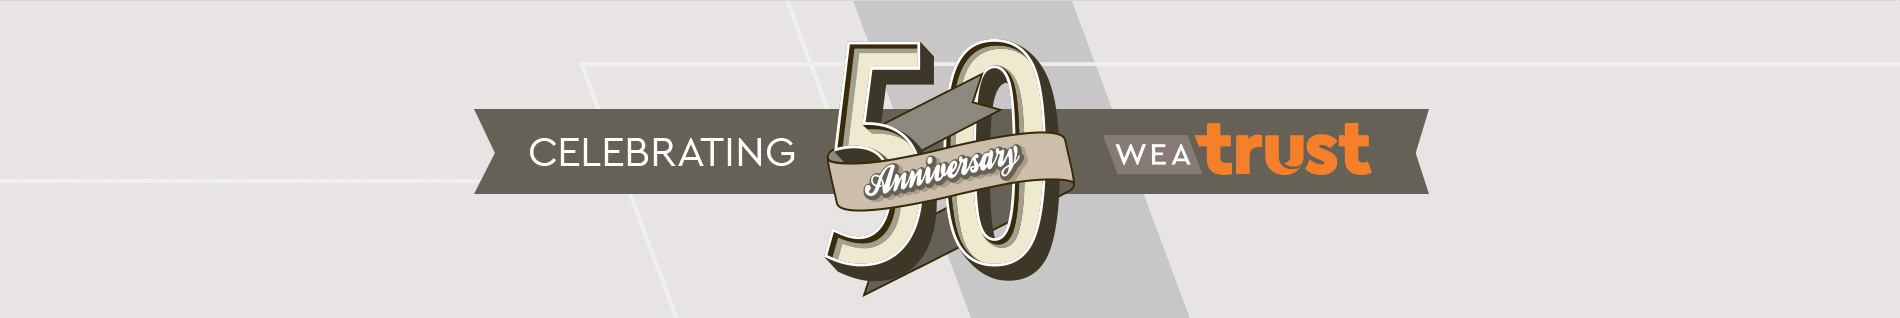 50 Years Of WEA Trust